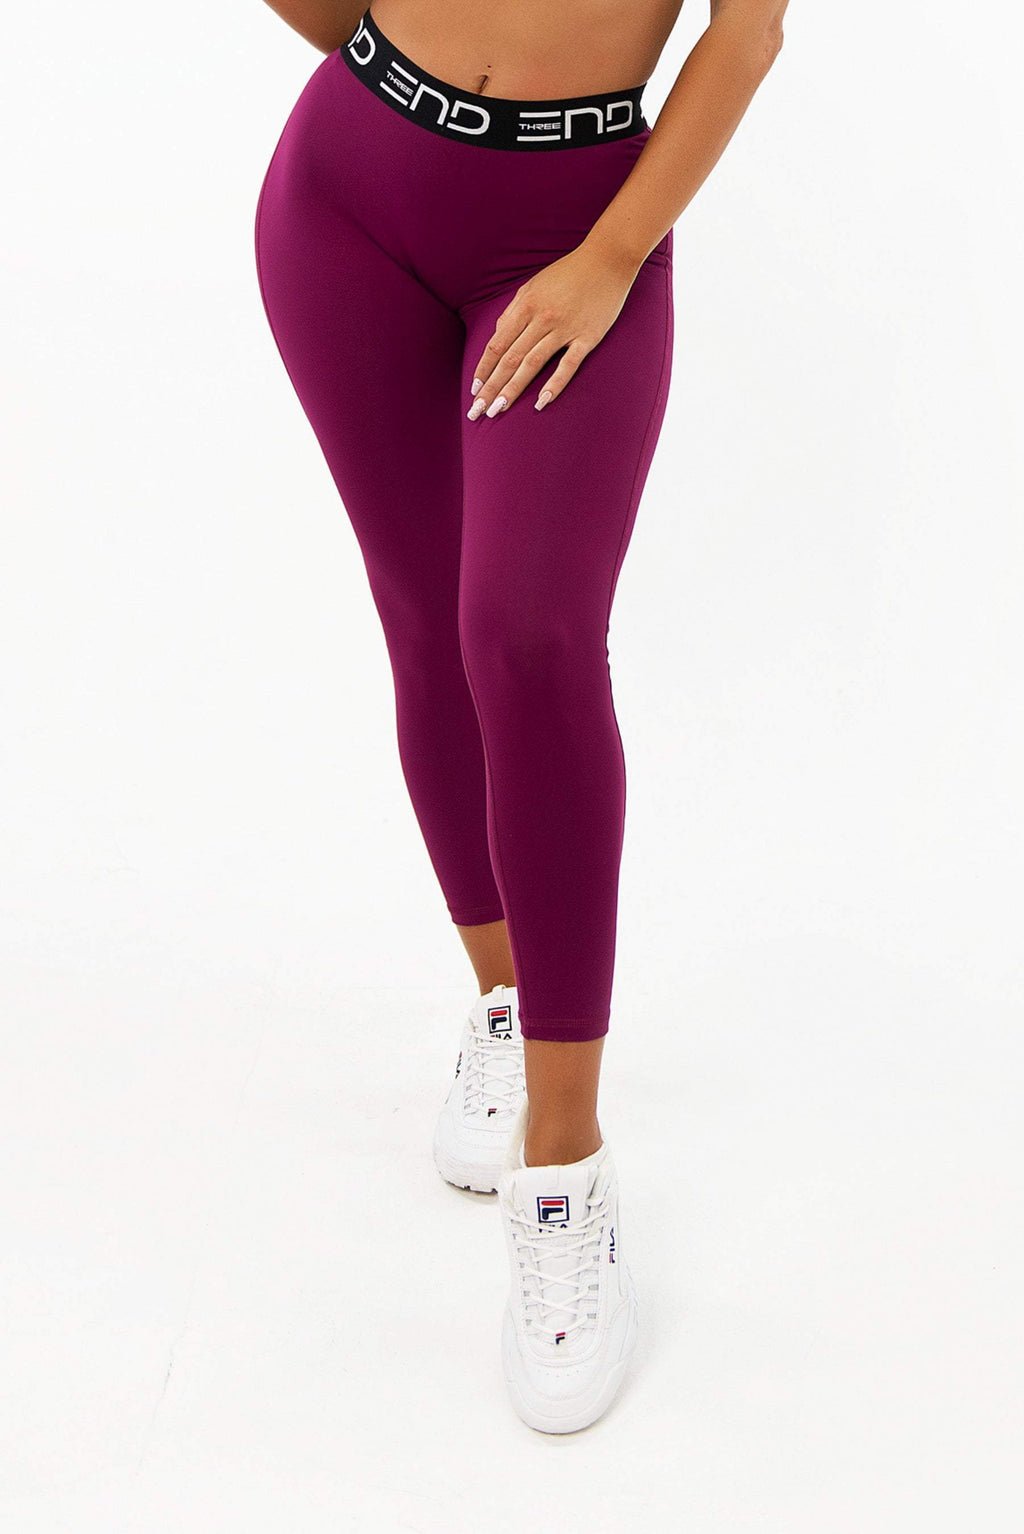 Three End Apparel Tights XS TRACK HIGH WAIST LEGGINGS - BURGUNDY